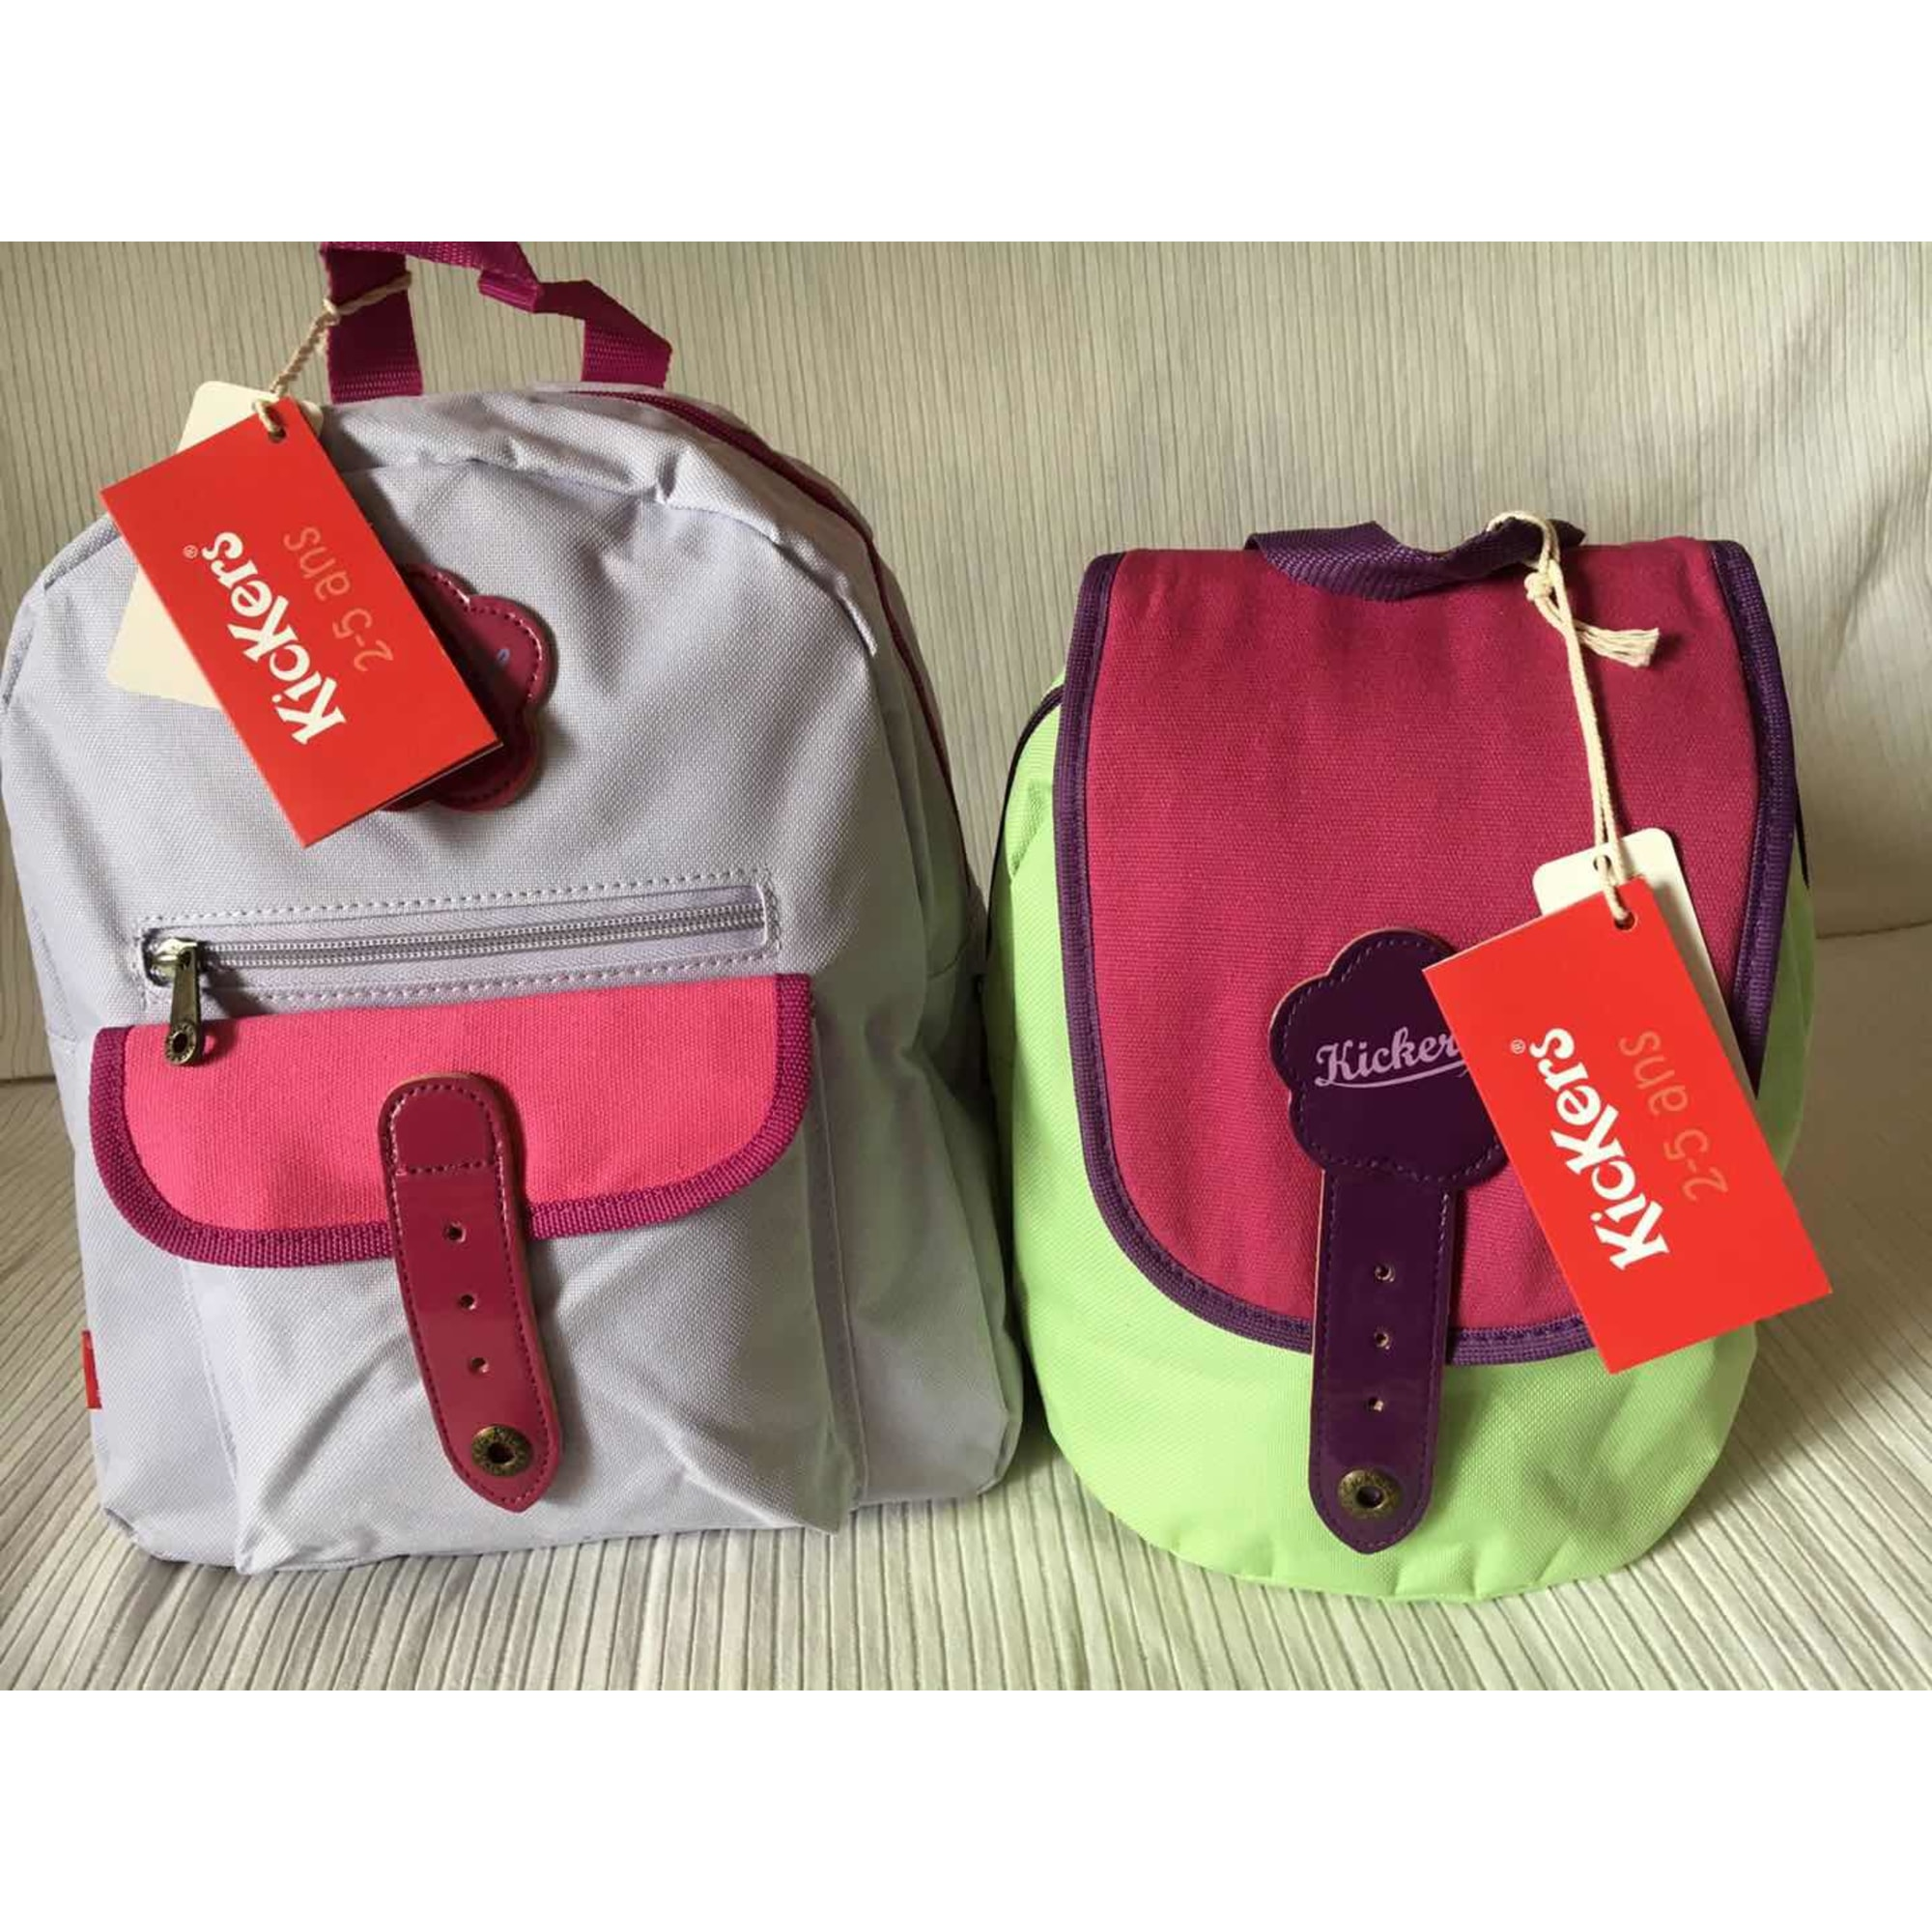 Sac à dos, cartable KICKERS Multicouleur